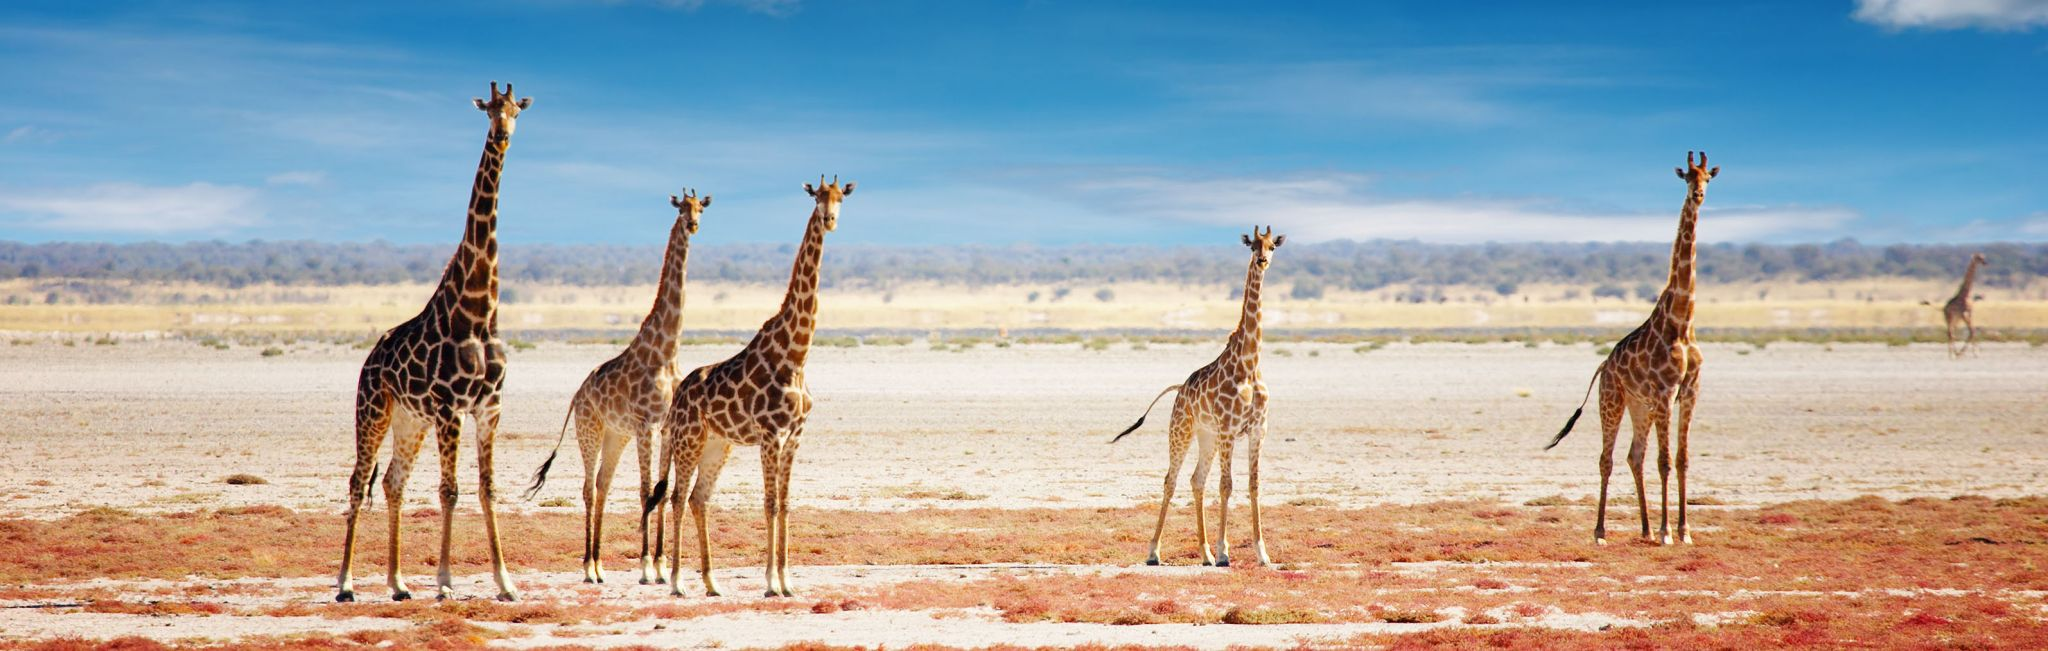 A tower of giraffe in Etosha National Park.